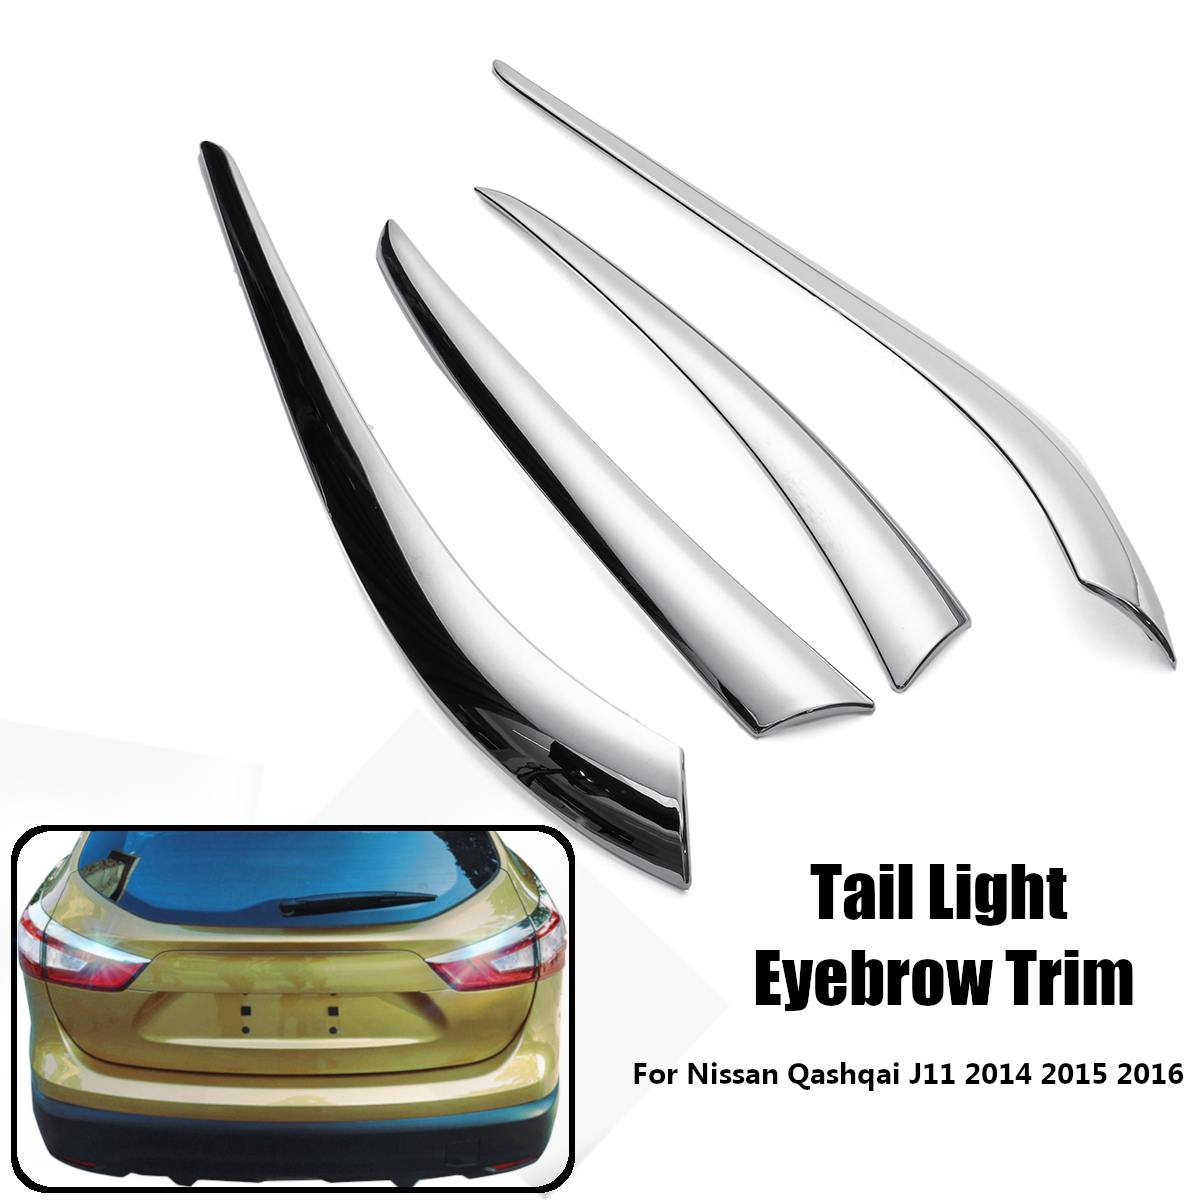 for <font><b>Nissan</b></font> <font><b>Qashqai</b></font> J11 2014 2015 <font><b>2016</b></font> Car Styling Eyelid Car Tail Light Lamp Eyebrow Cover Trim Chrome Decoration <font><b>Accessories</b></font> image